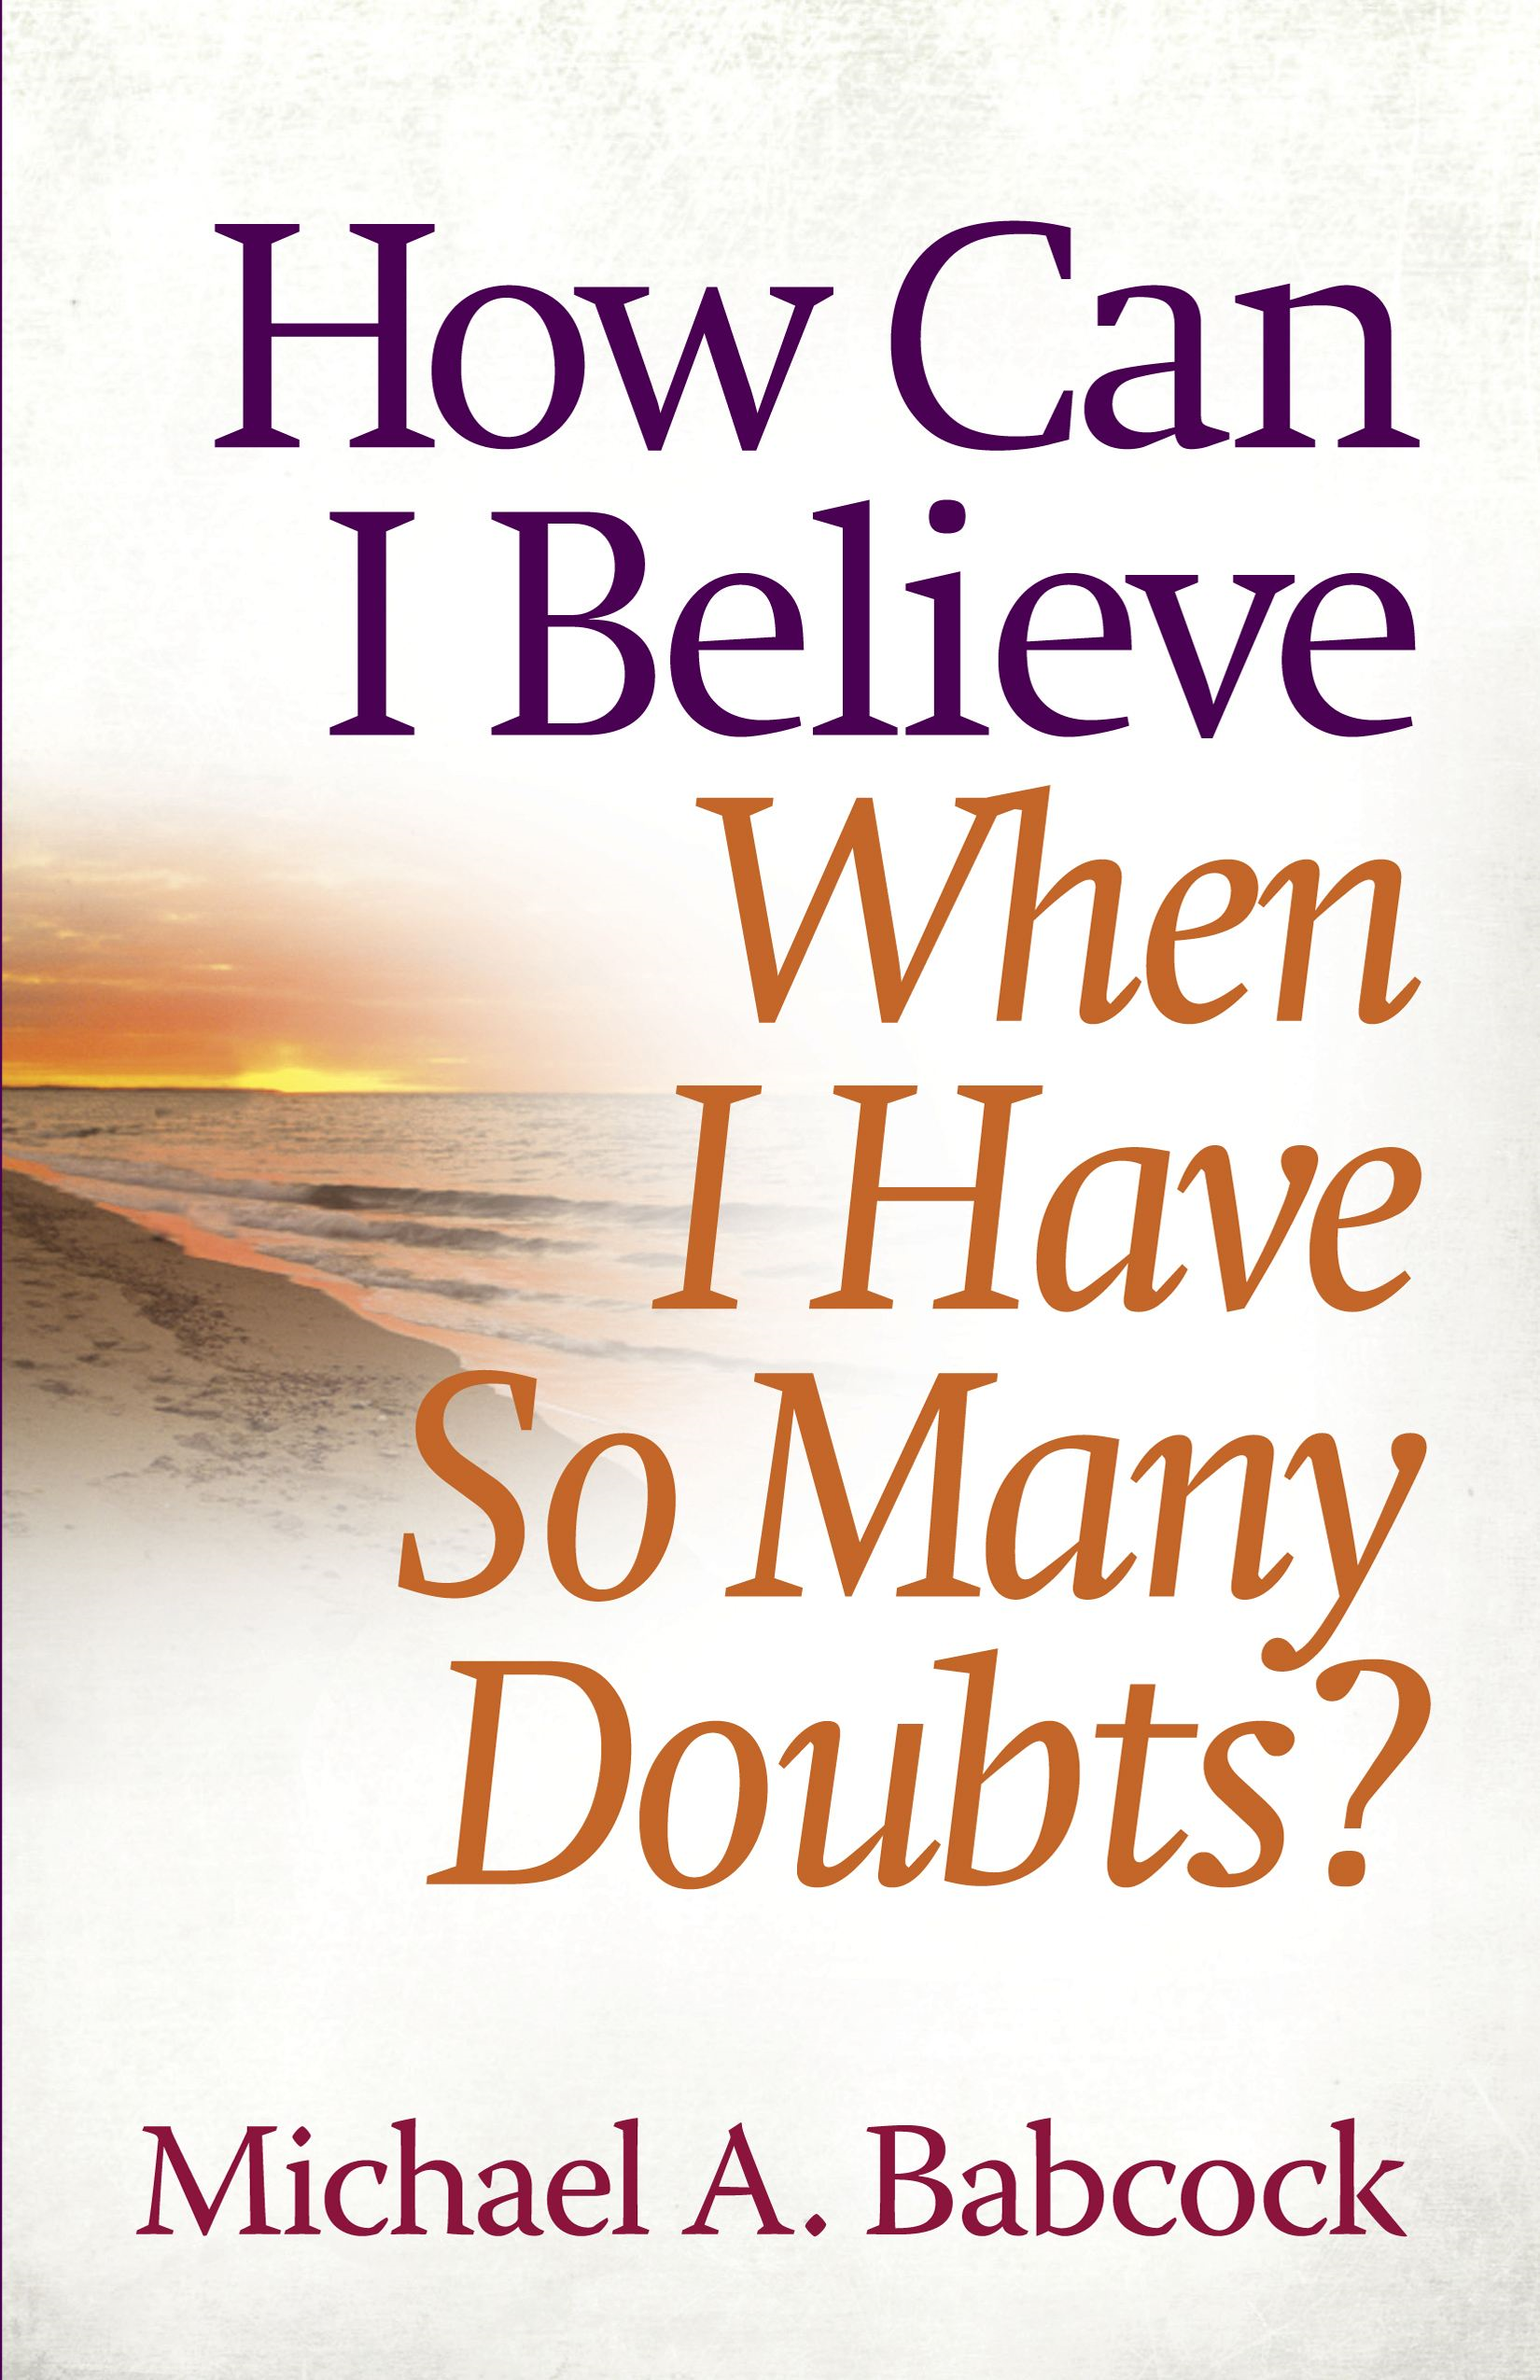 How Can I Believe When I Have So Many Doubts? By: Michael A. Babcock